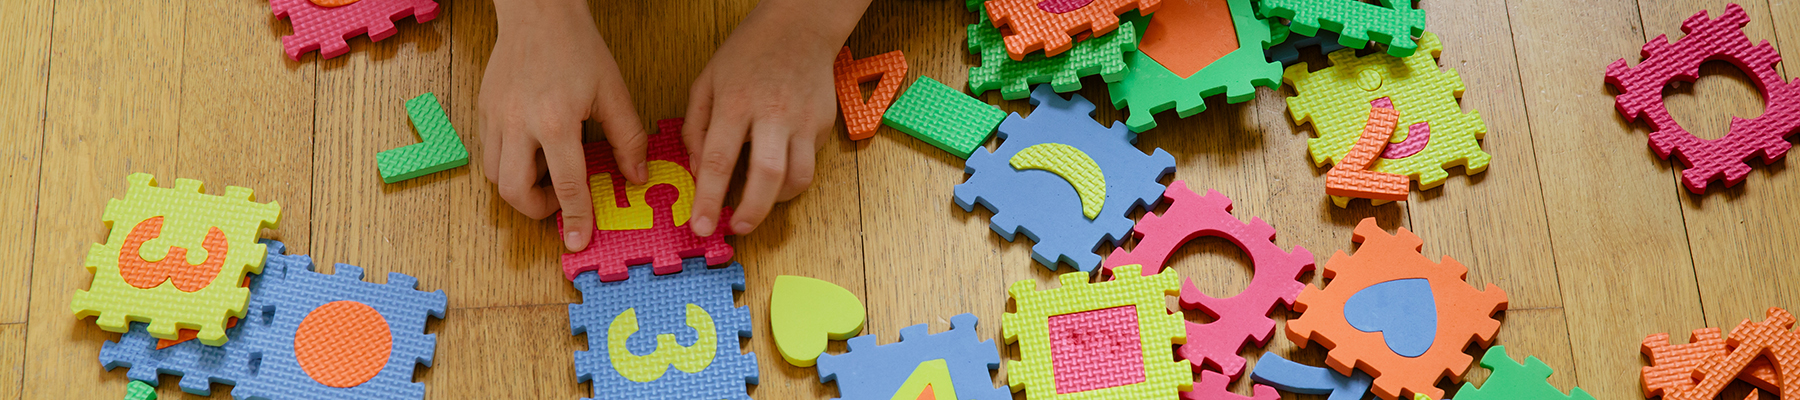 Child playing with foam letters